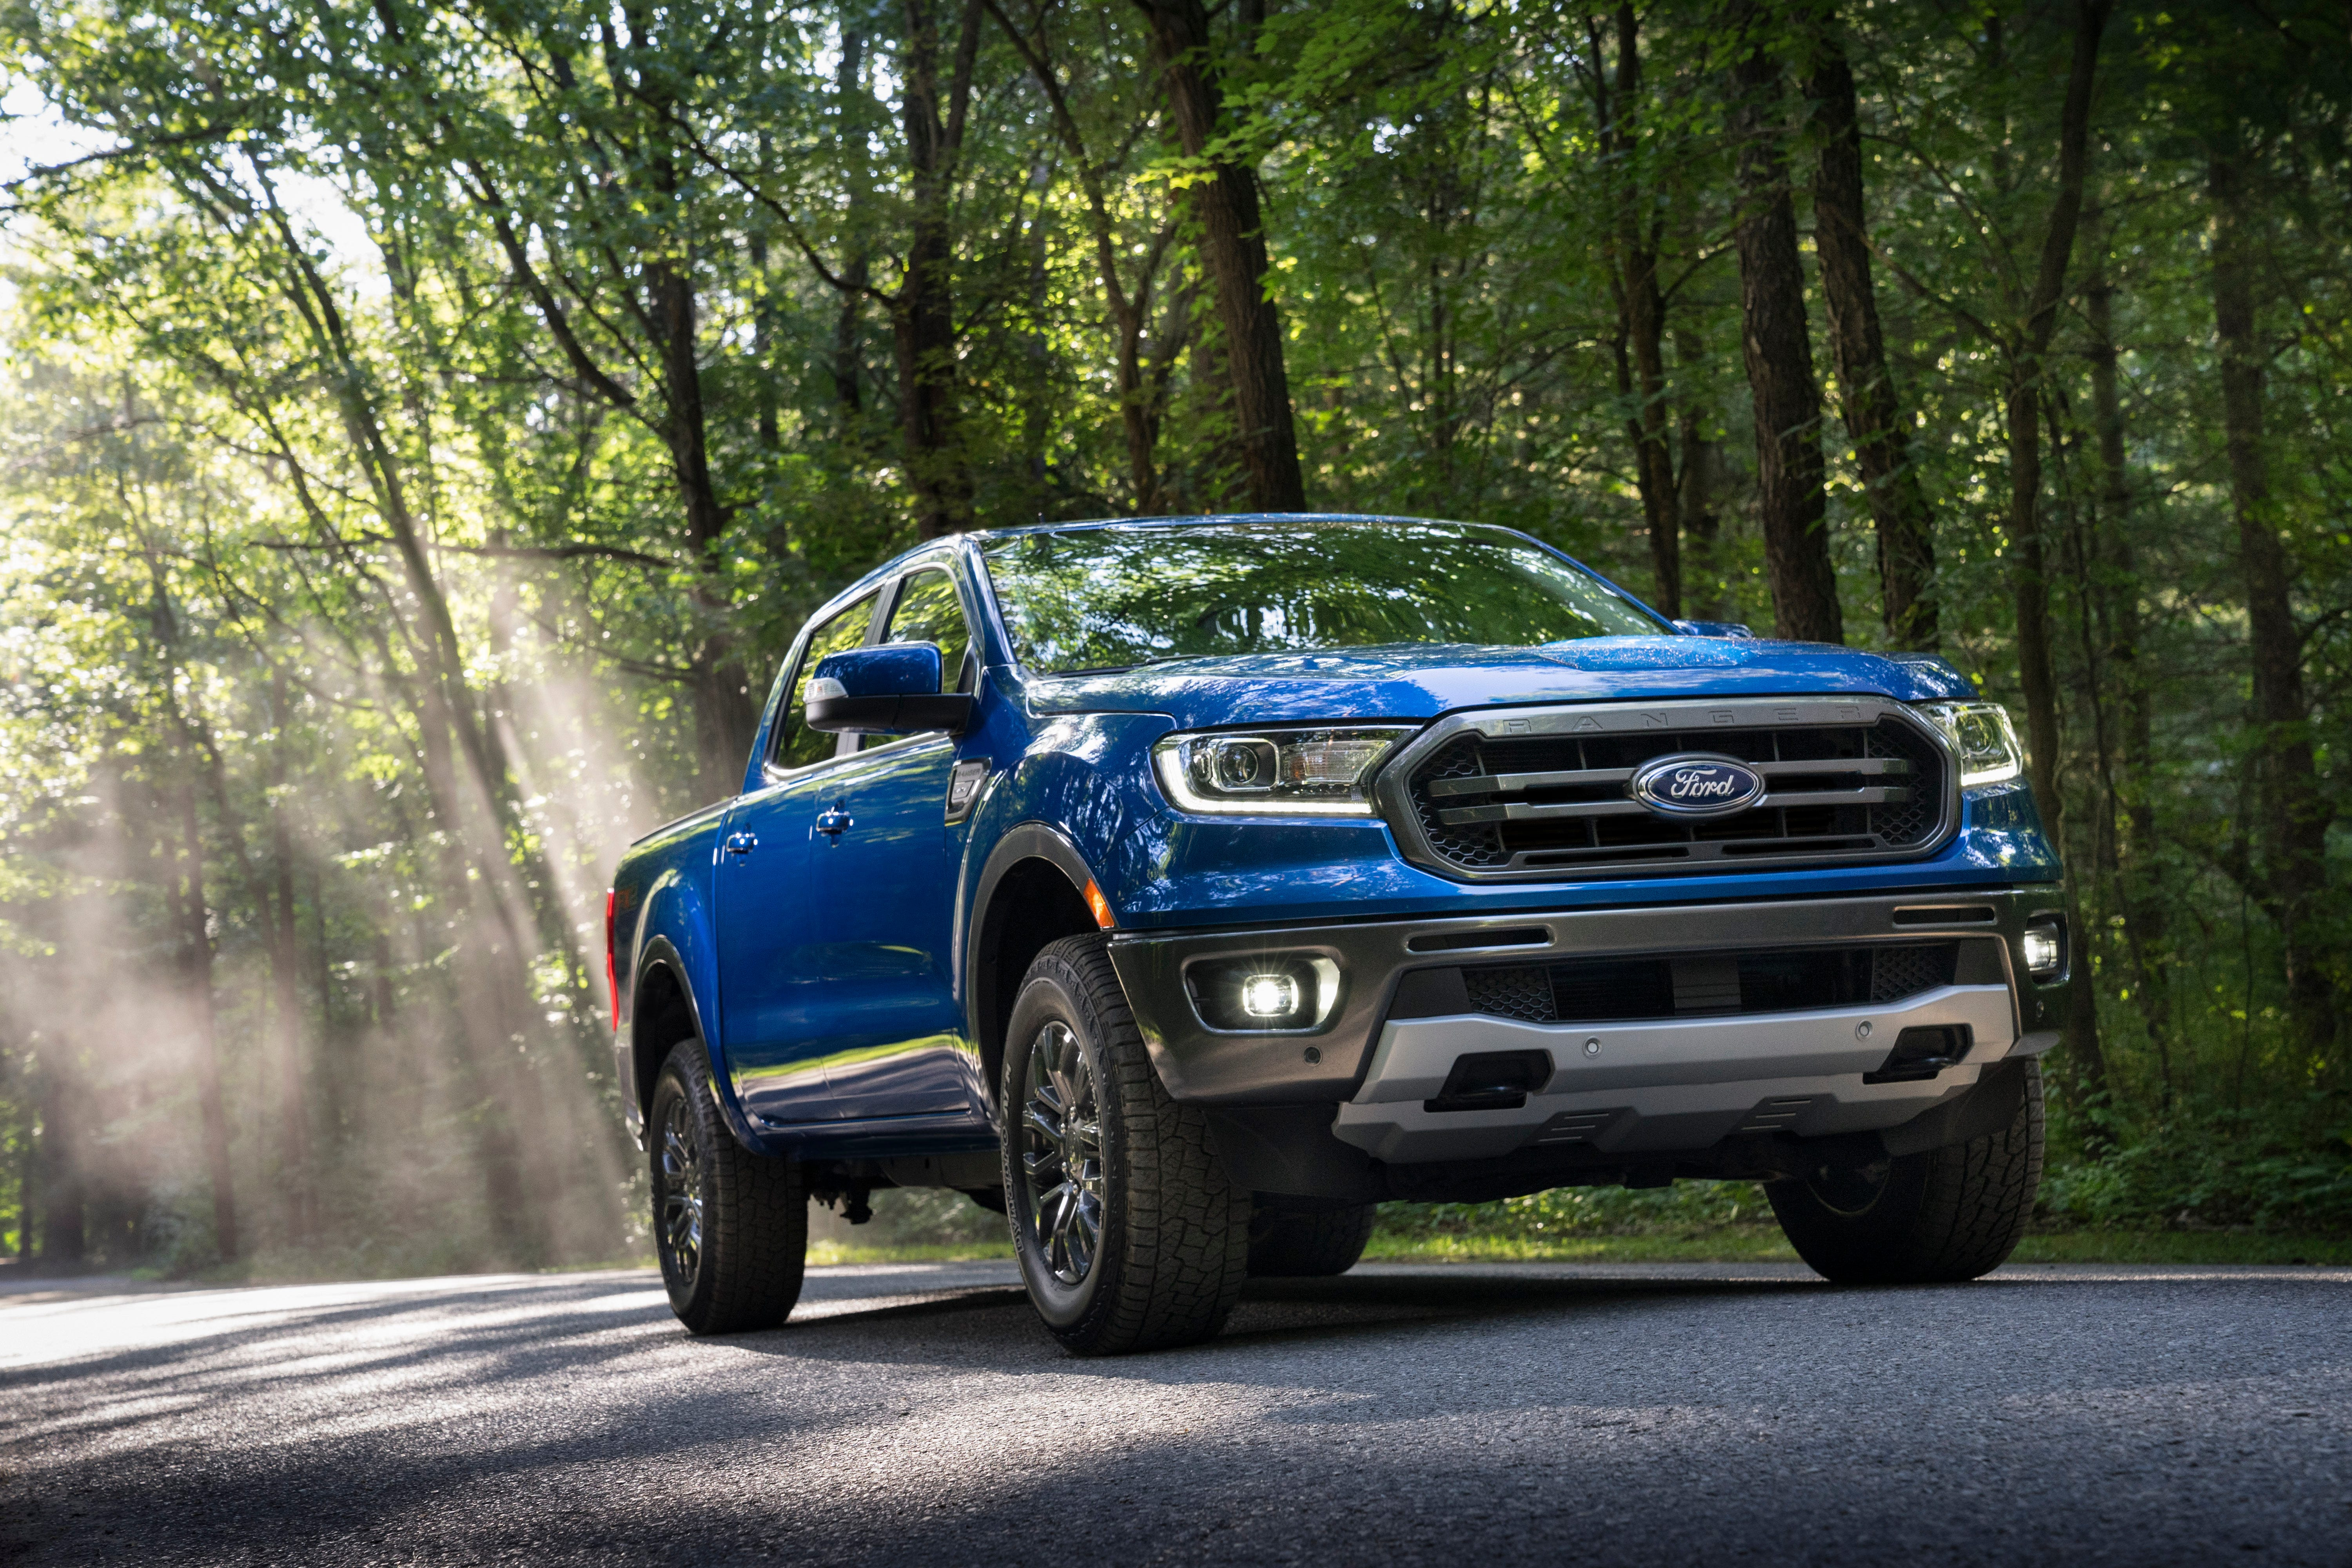 Ford Ranger, Jeep Cherokee, Tesla Model S top American-Made Index